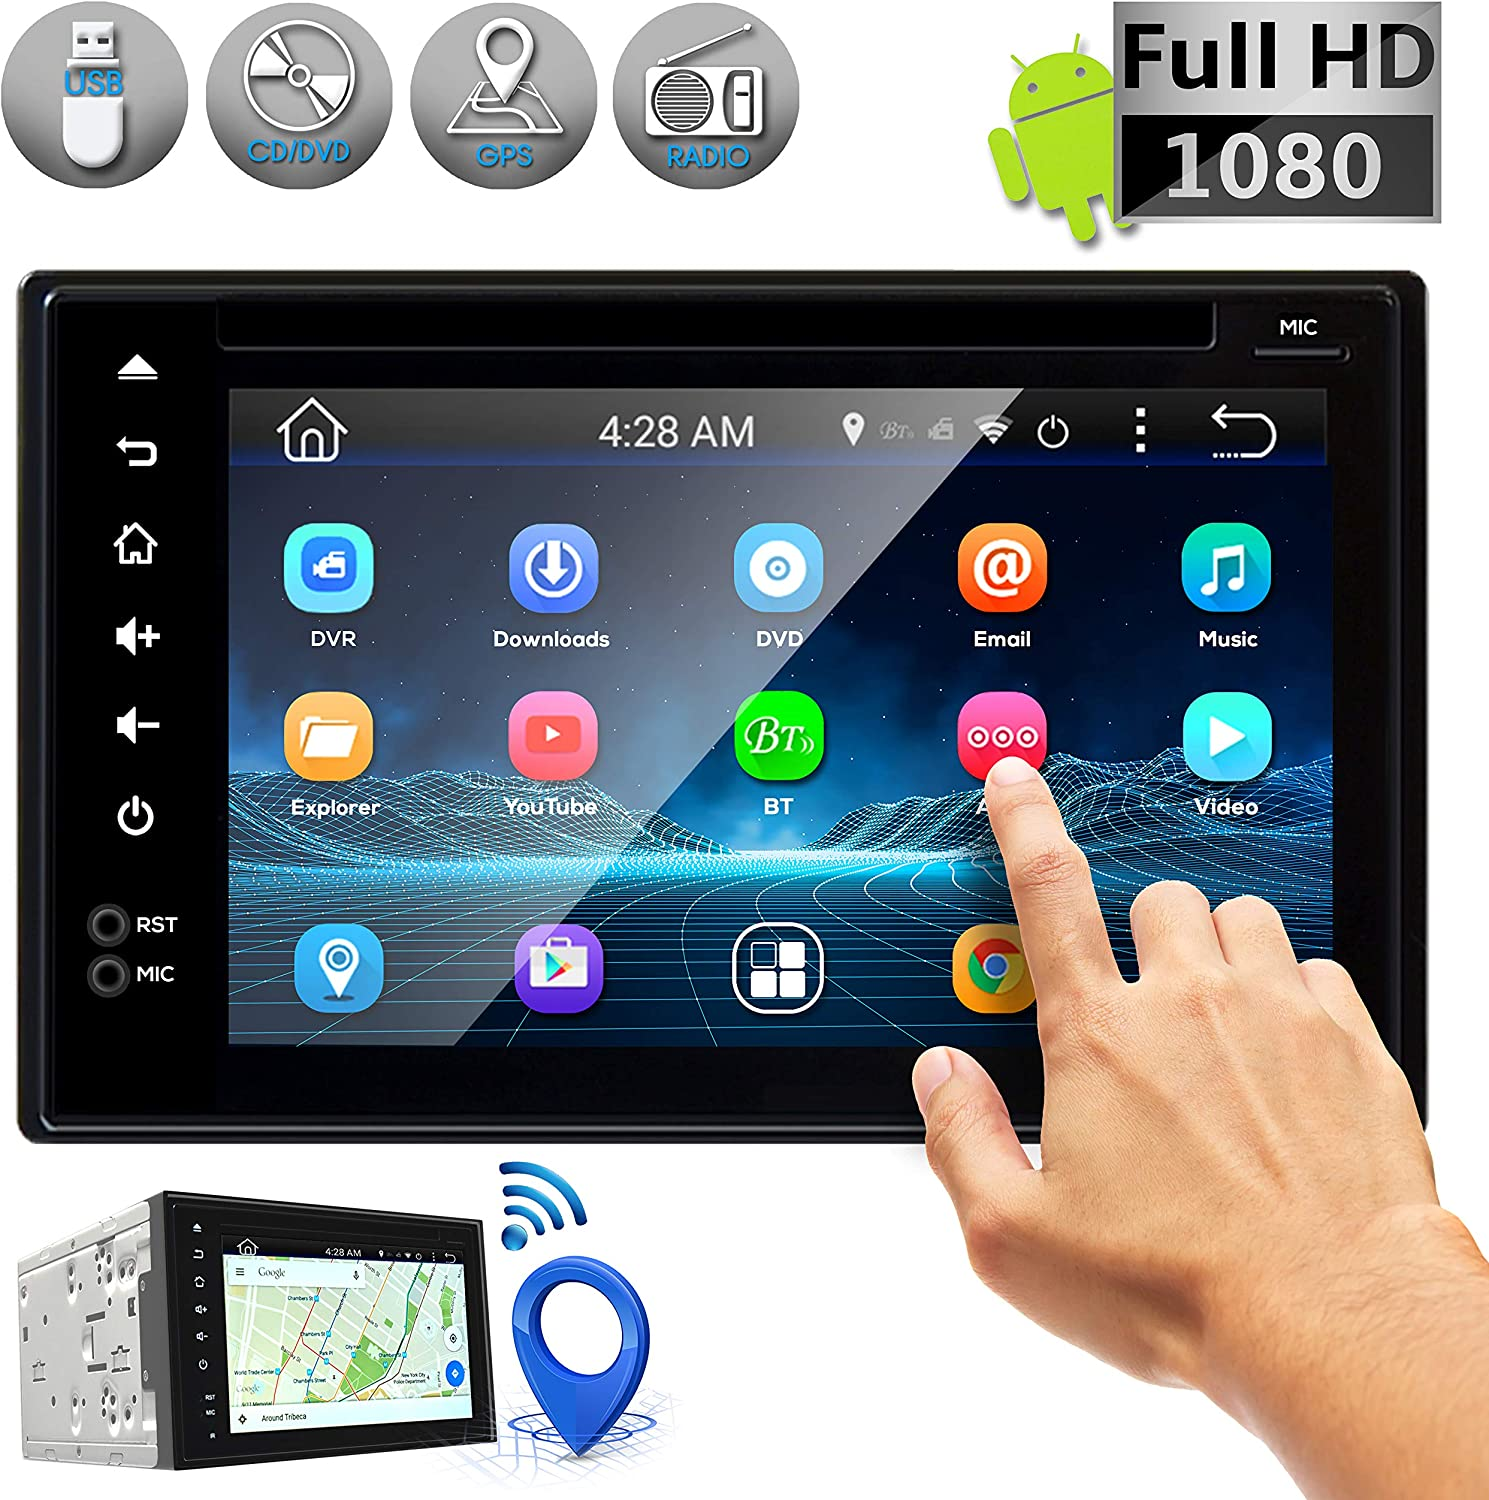 Amazon Com Double Din Android Stereo Receiver Car Head Unit System W Rear View Backup Camera Support 6 Inch Touchscreen Lcd 3g Wifi Bluetooth Cd Dvd Player Gps Navigation Usb Radio